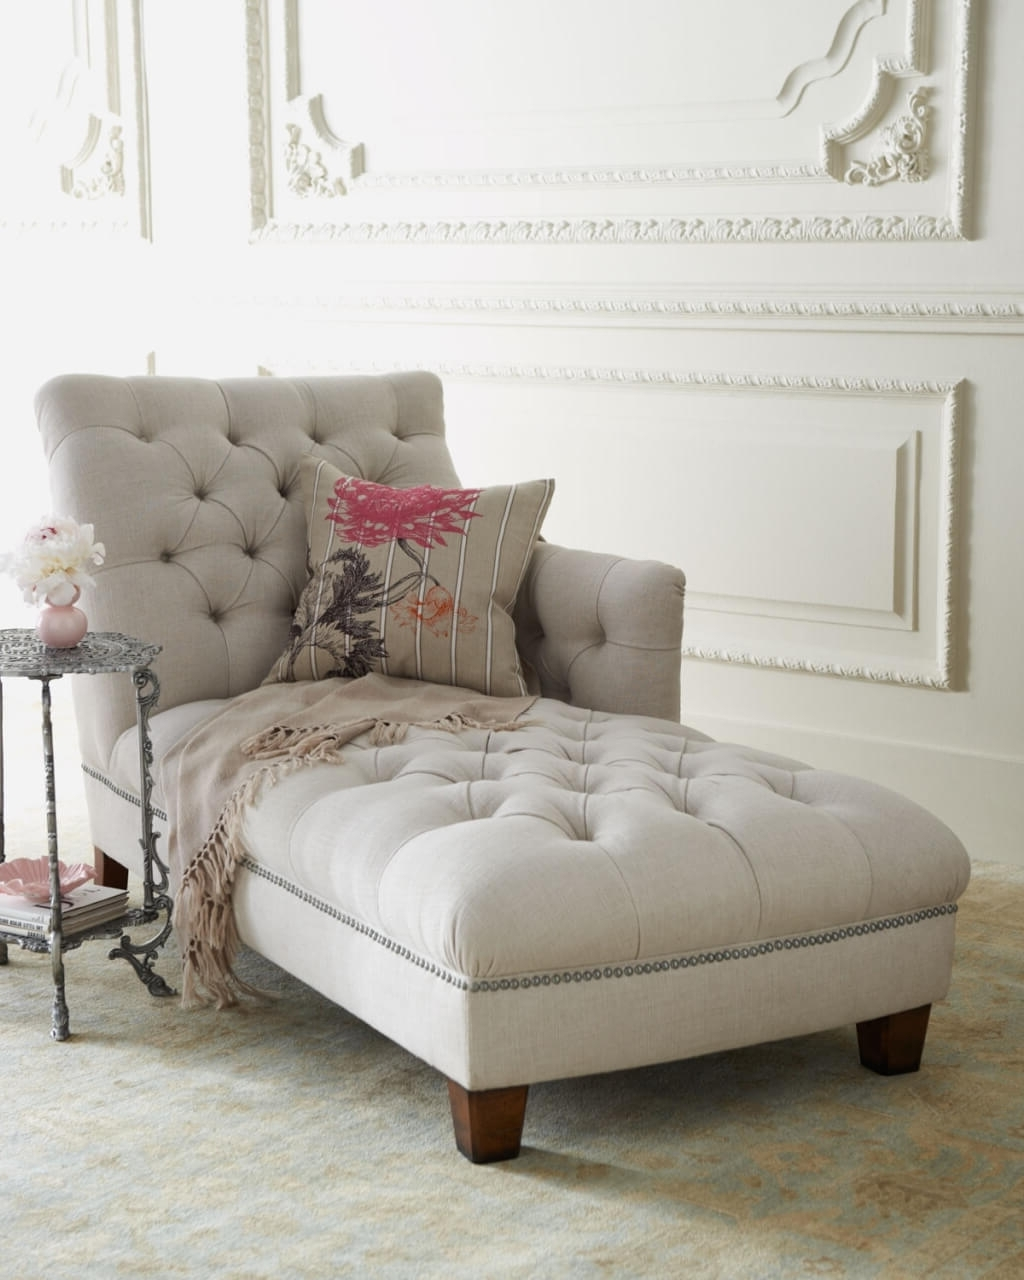 Round Chaises In Popular Furniture: Relaxing White Tufted Chaise Lounge With Small Round (View 8 of 15)